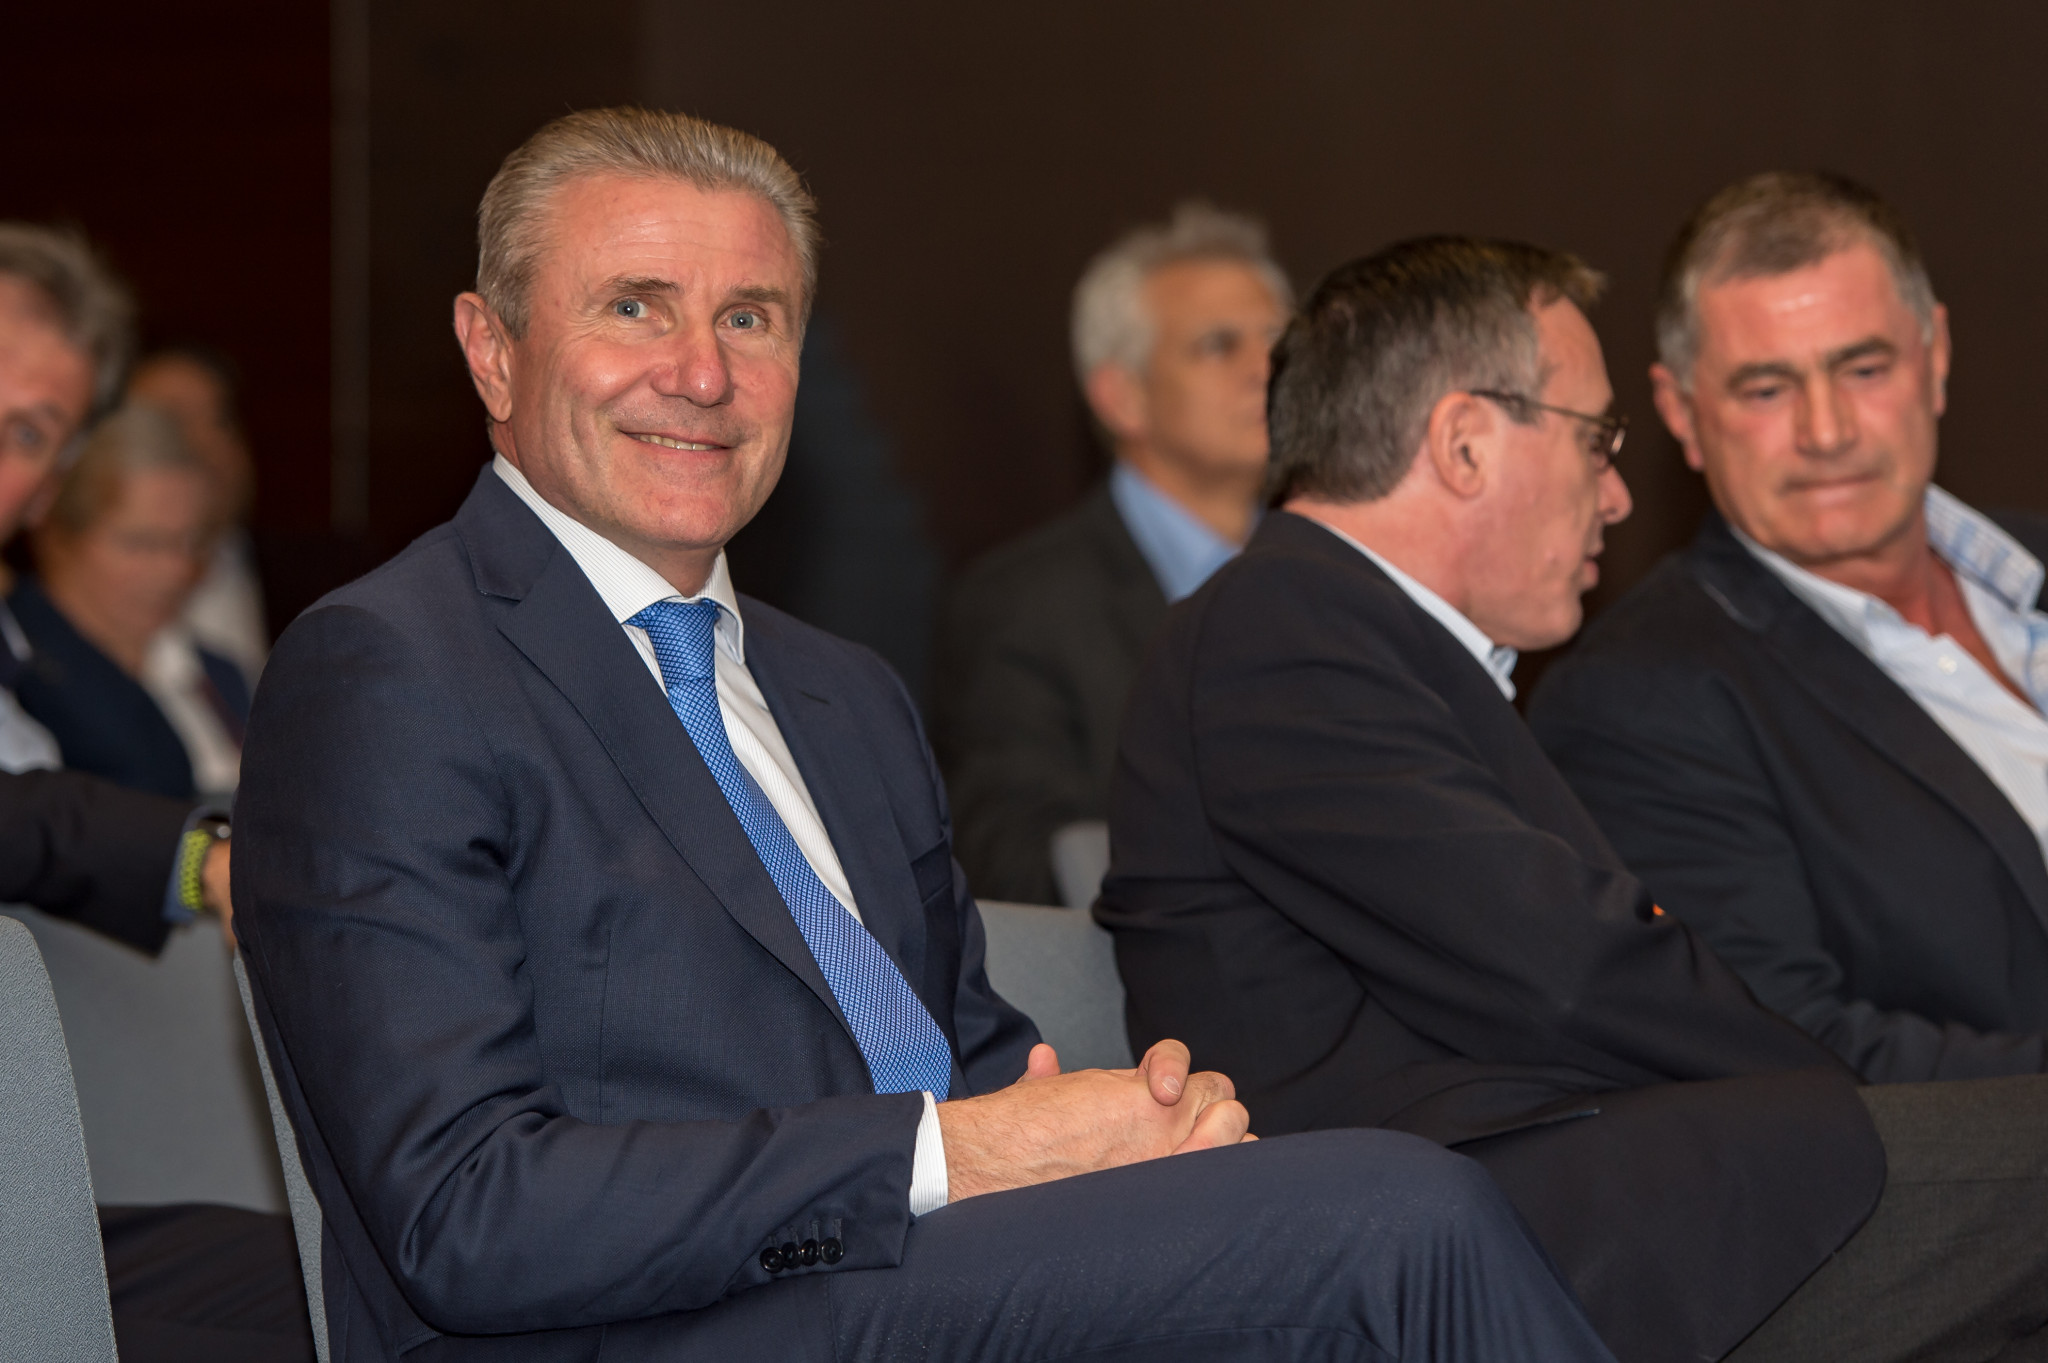 Bubka and Popov threaten legal action after Rio Governor claims he helped bribe them to vote for Rio 2016